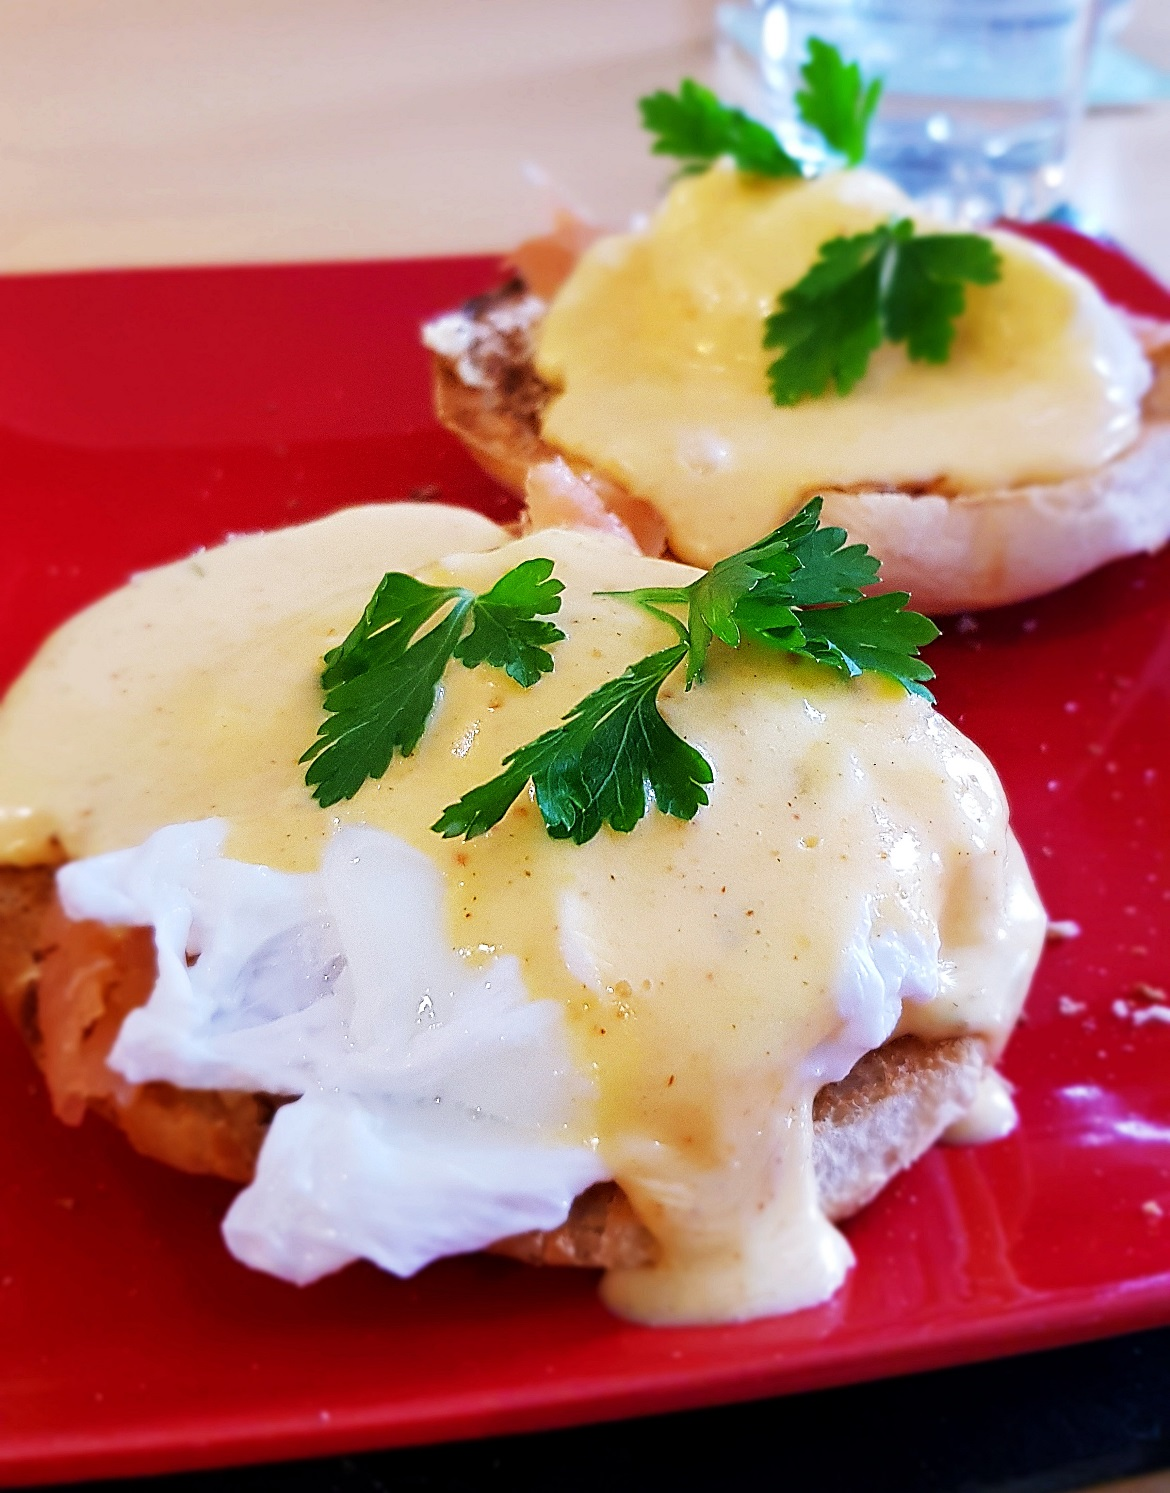 Eggs royale for Tim's birthday - December Monthly Recap by BeckyBecky Blogs